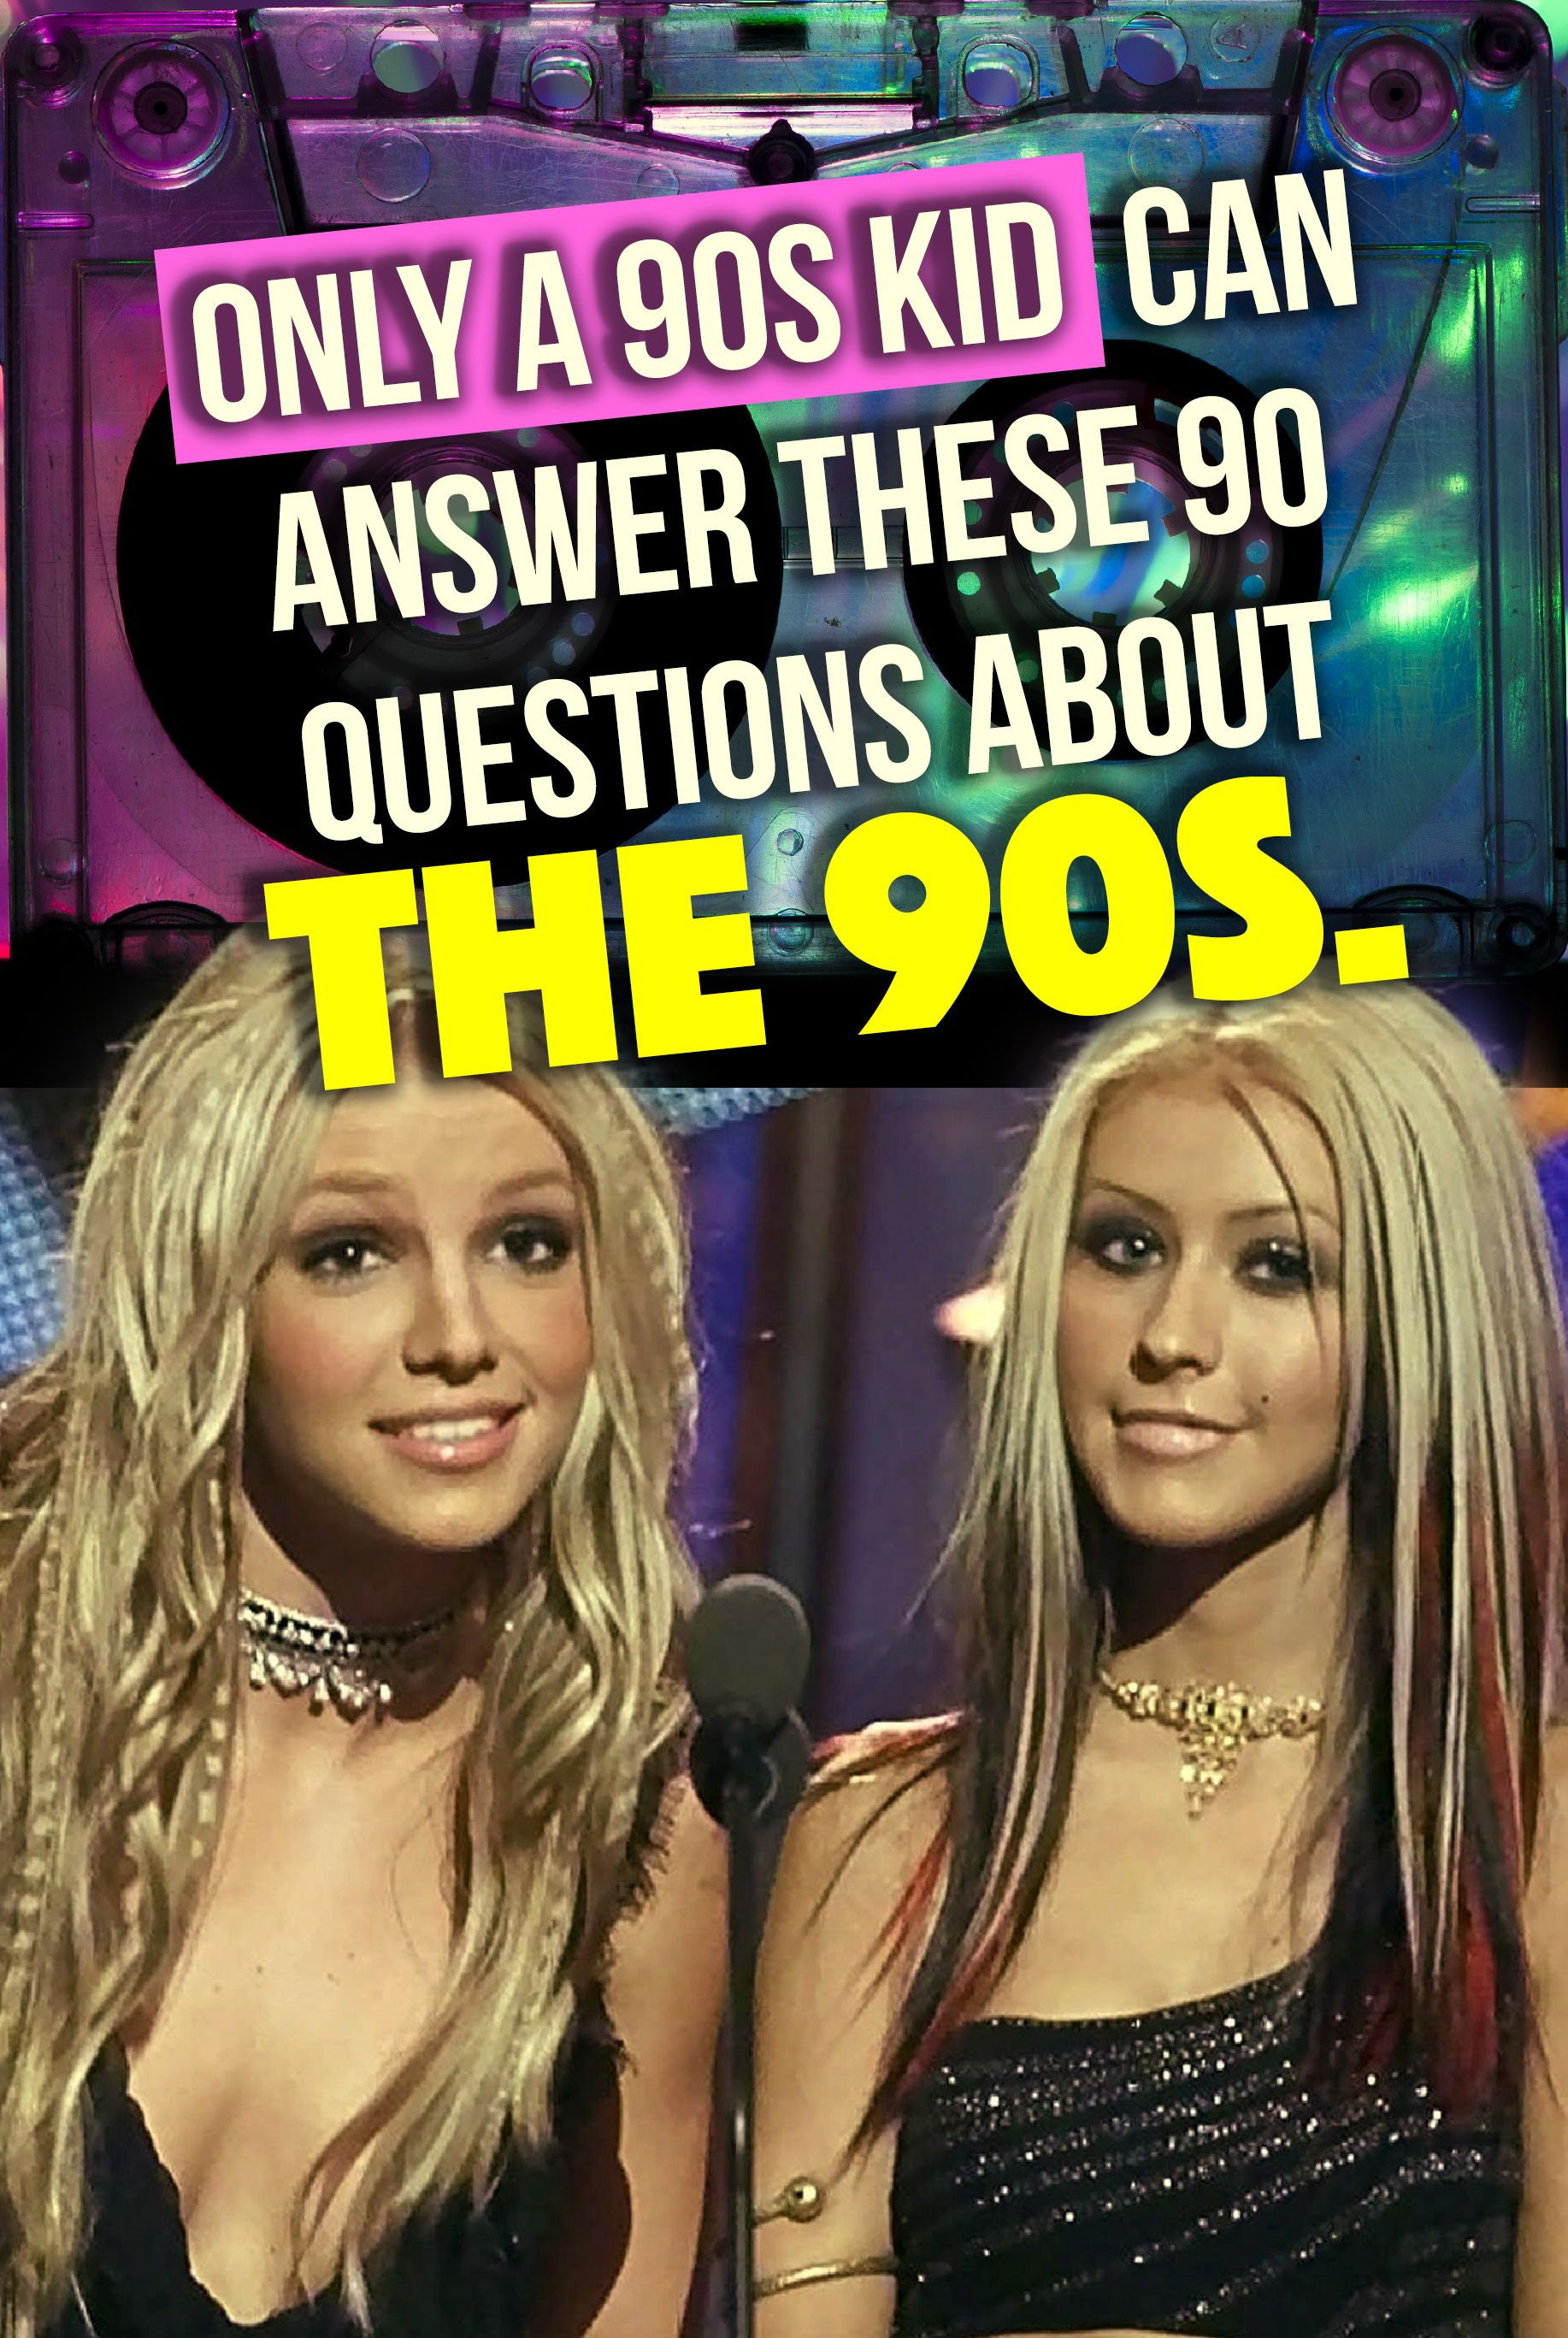 Quiz: Only A 90s Kid Can Answer These 90 Questions About The